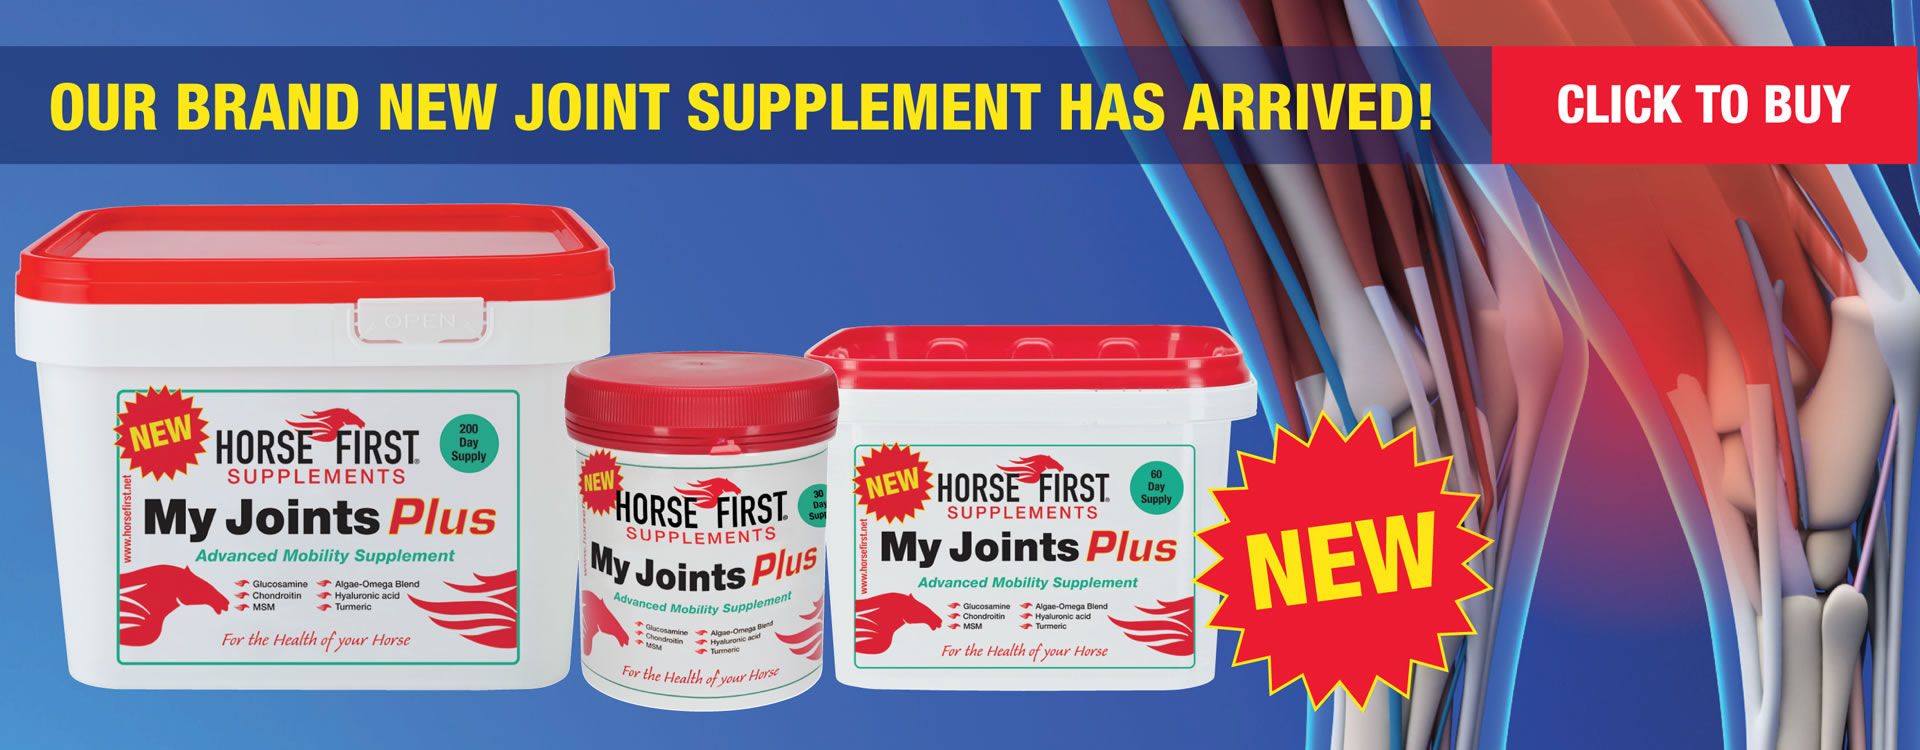 My Joints Plus - Buy Now!